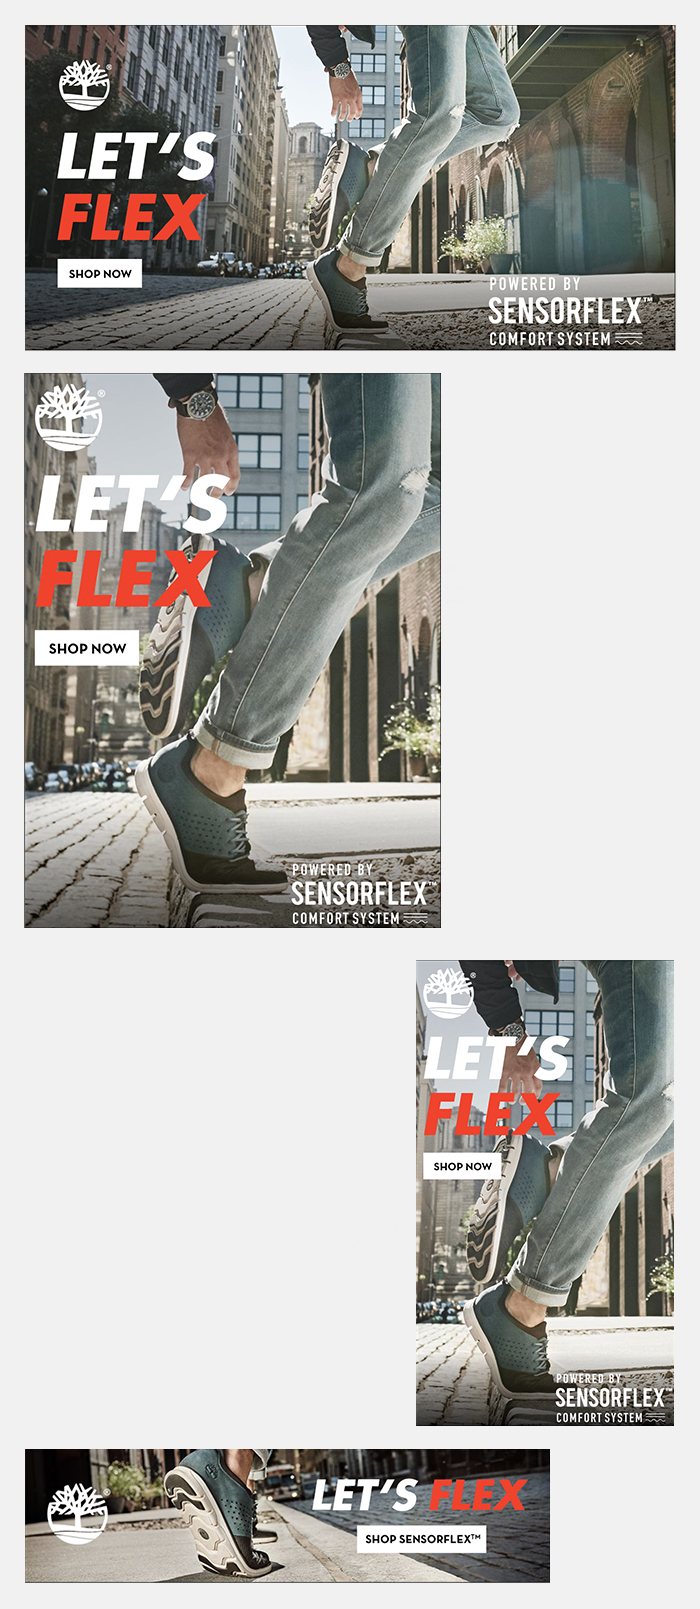 Timberland SensorFlexT HTML5 Ads Strategic Brand